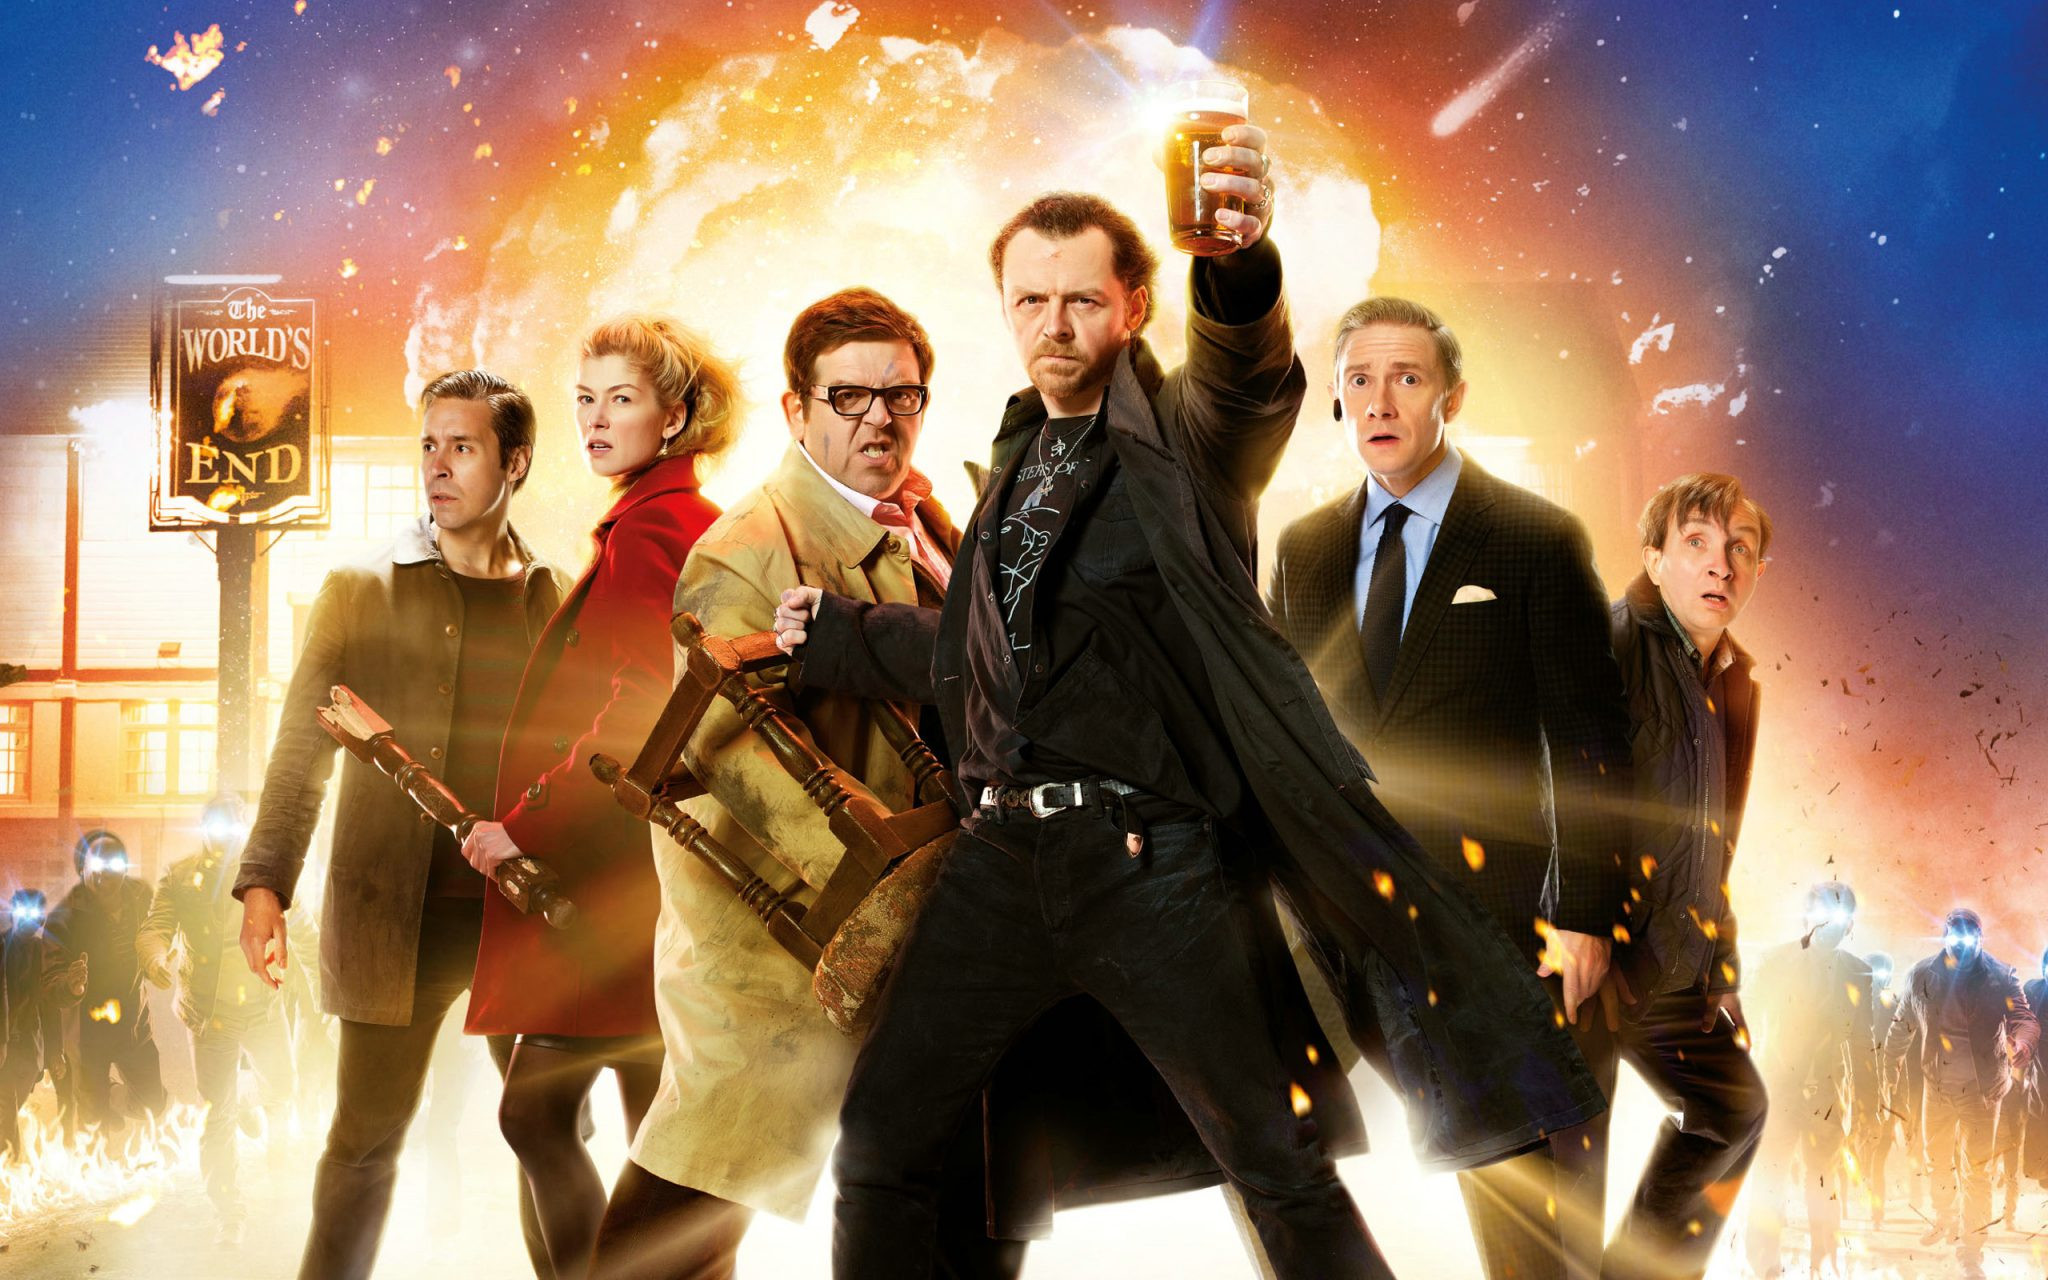 Is the World's End Worth Watching